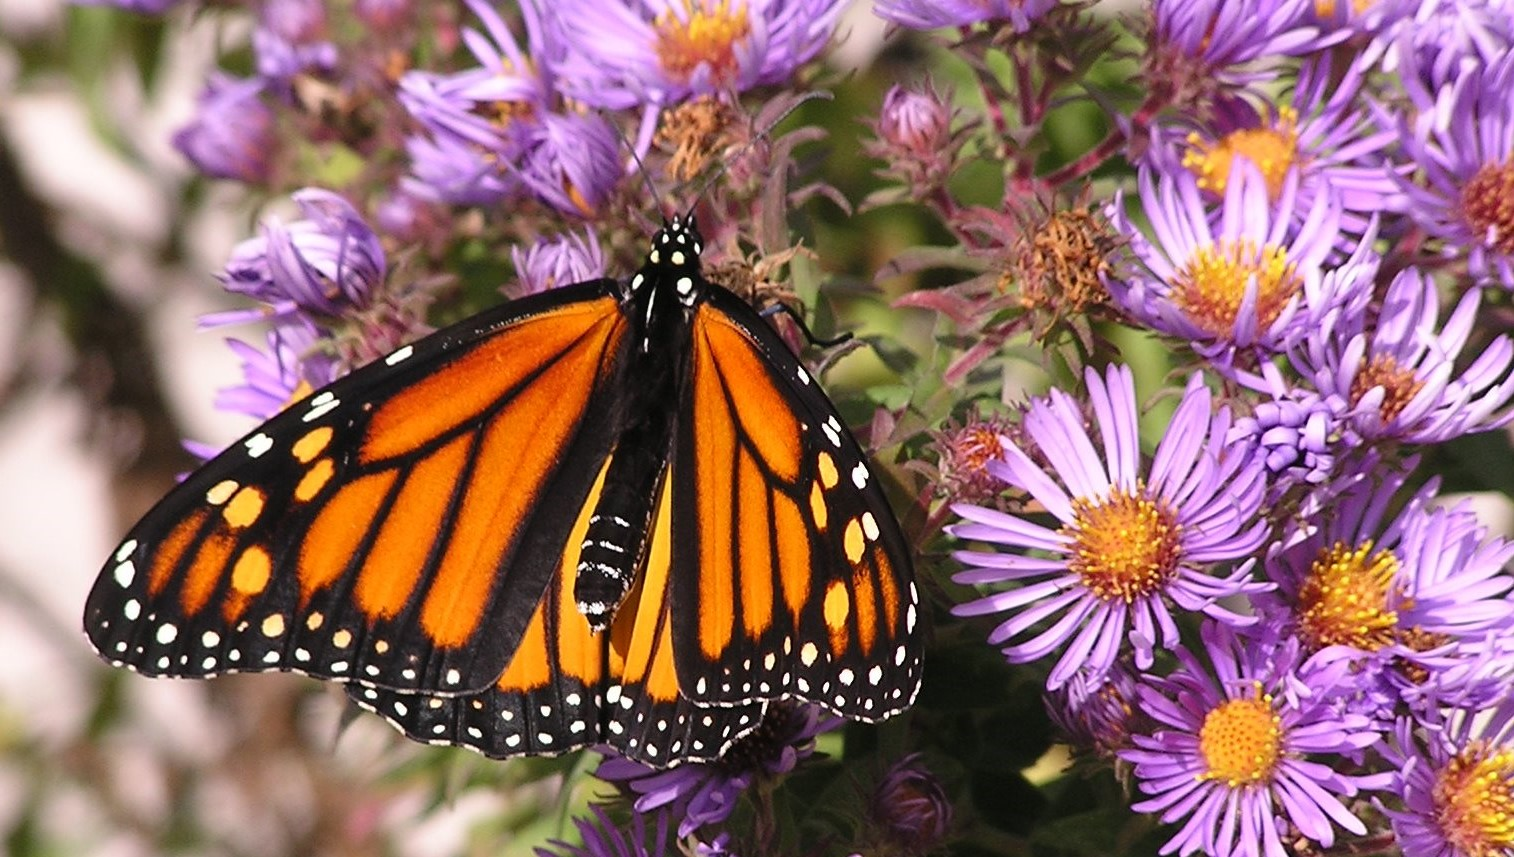 With cooler weather just around the corner, Monarch butterflies in the upper Midwest are fueling up for their trip to central Mexico